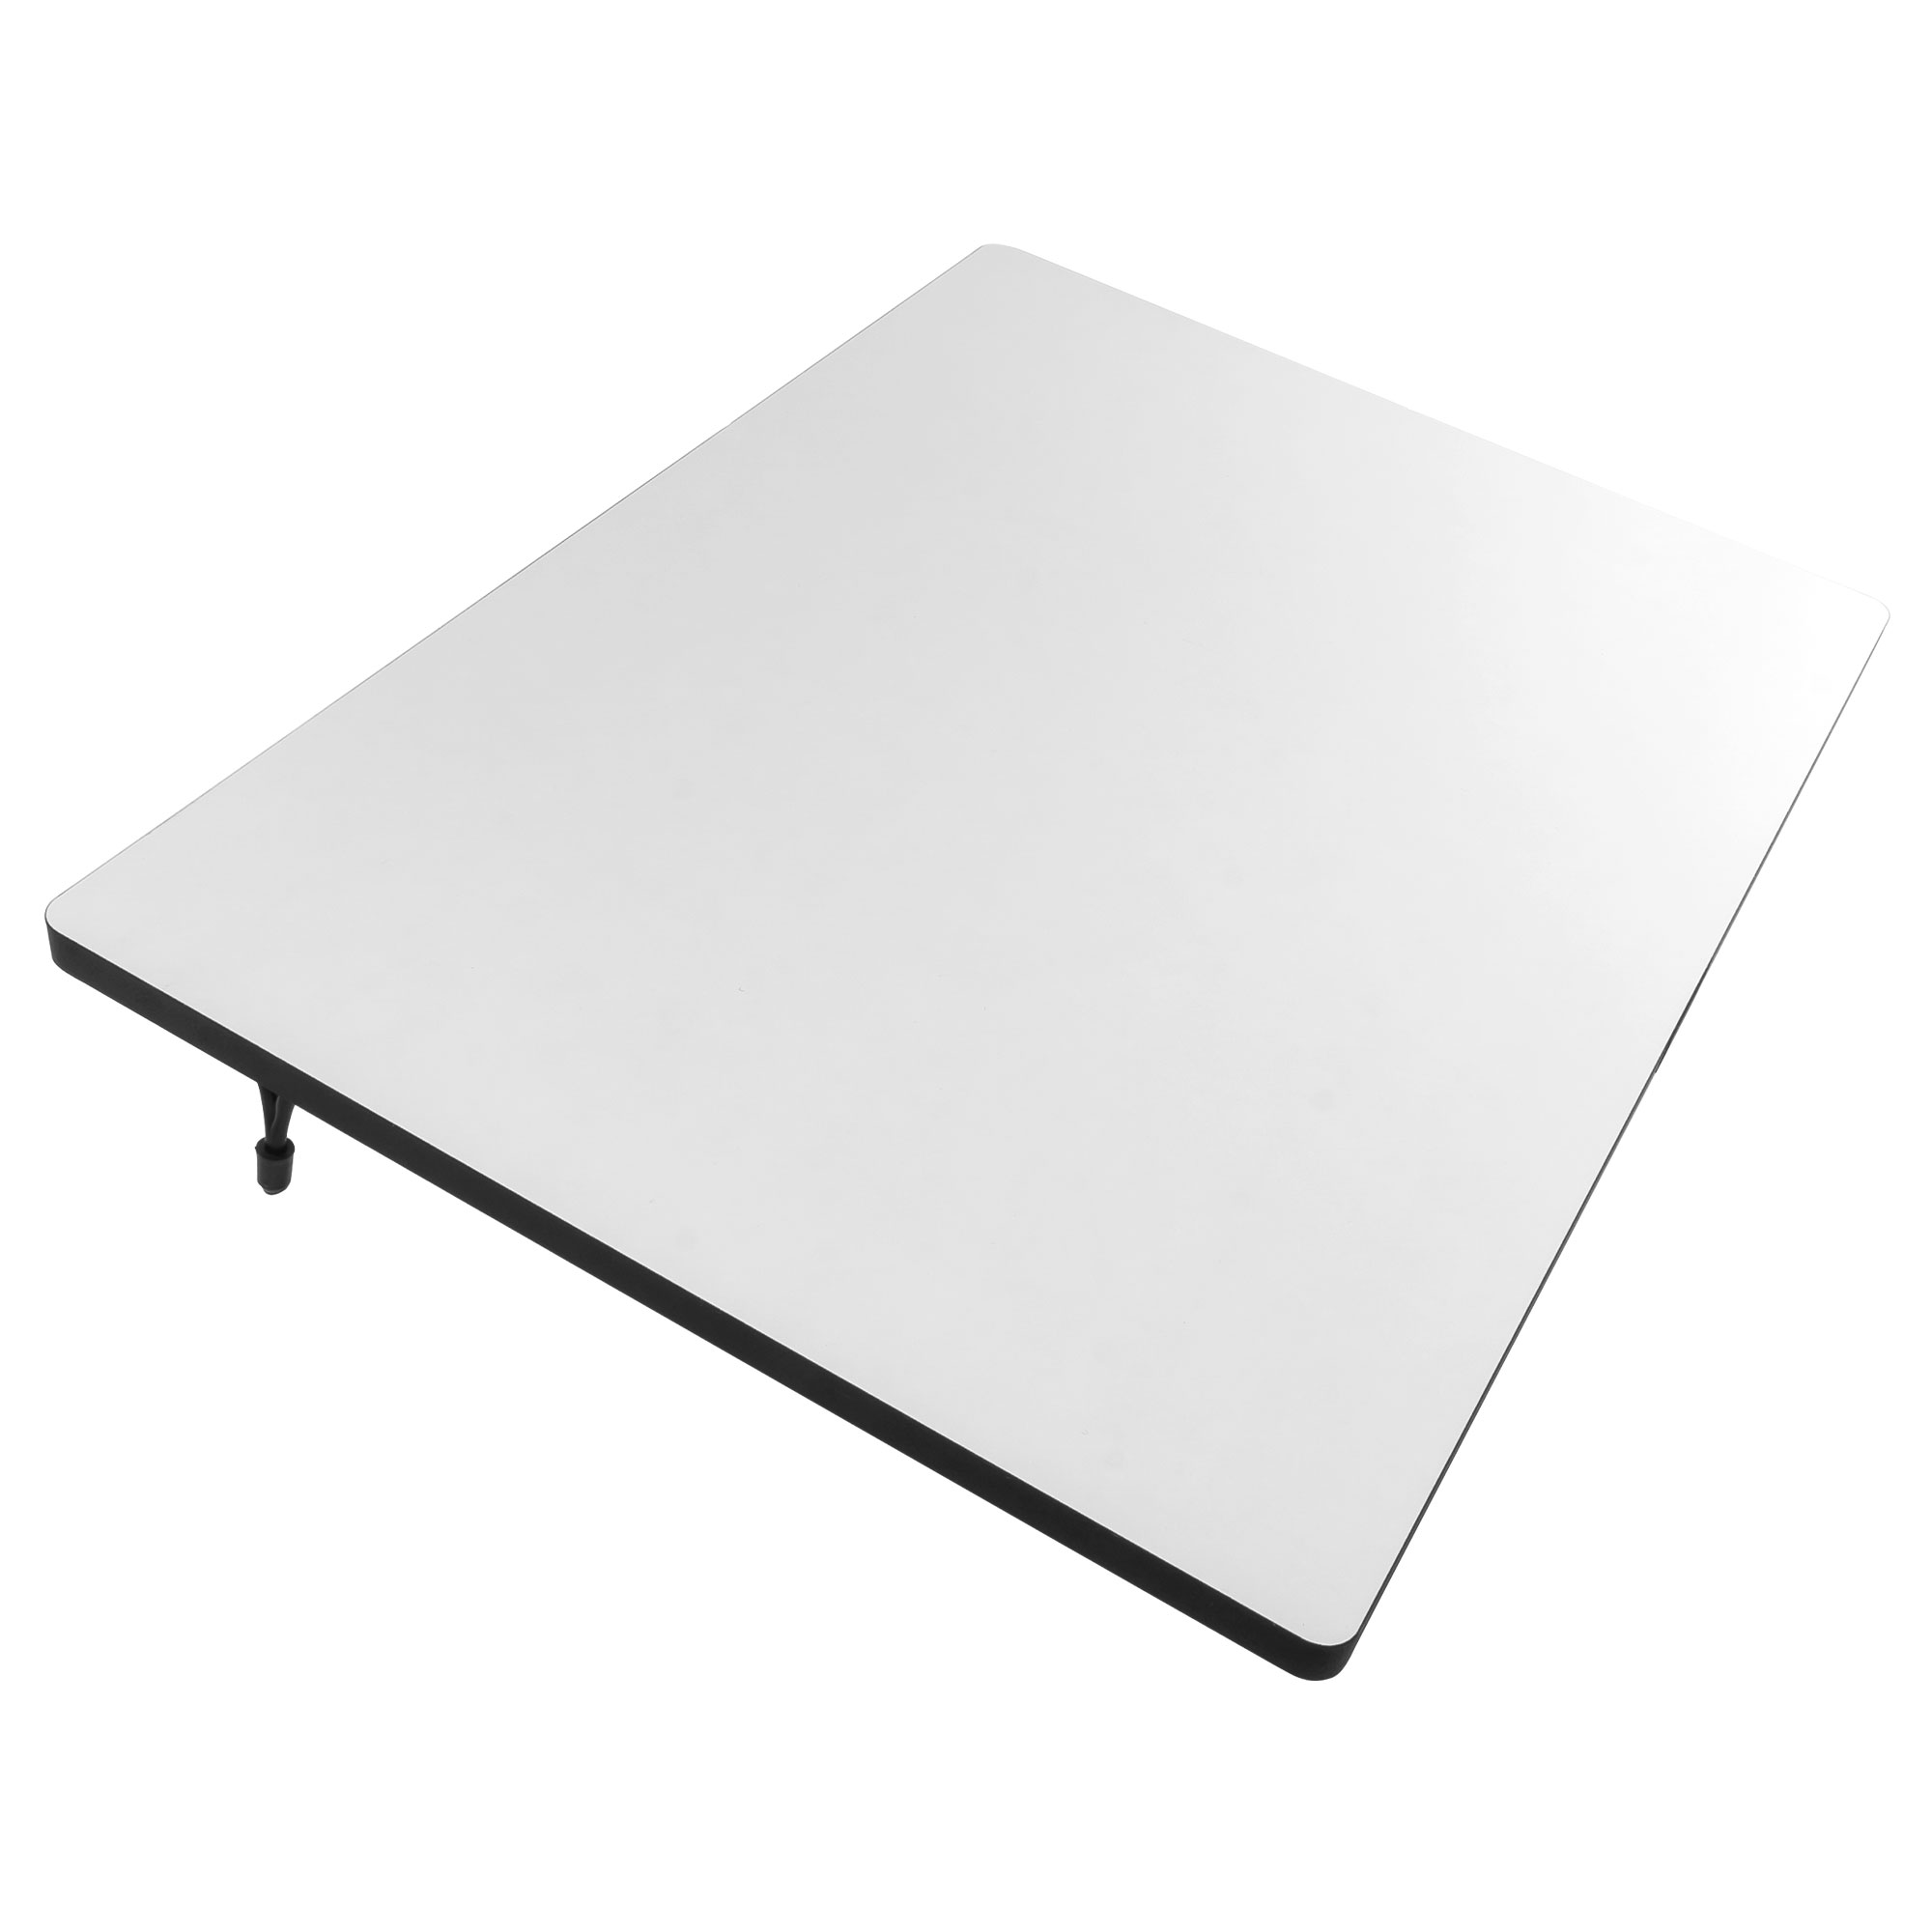 the stp drafting drawing board by pacific arc